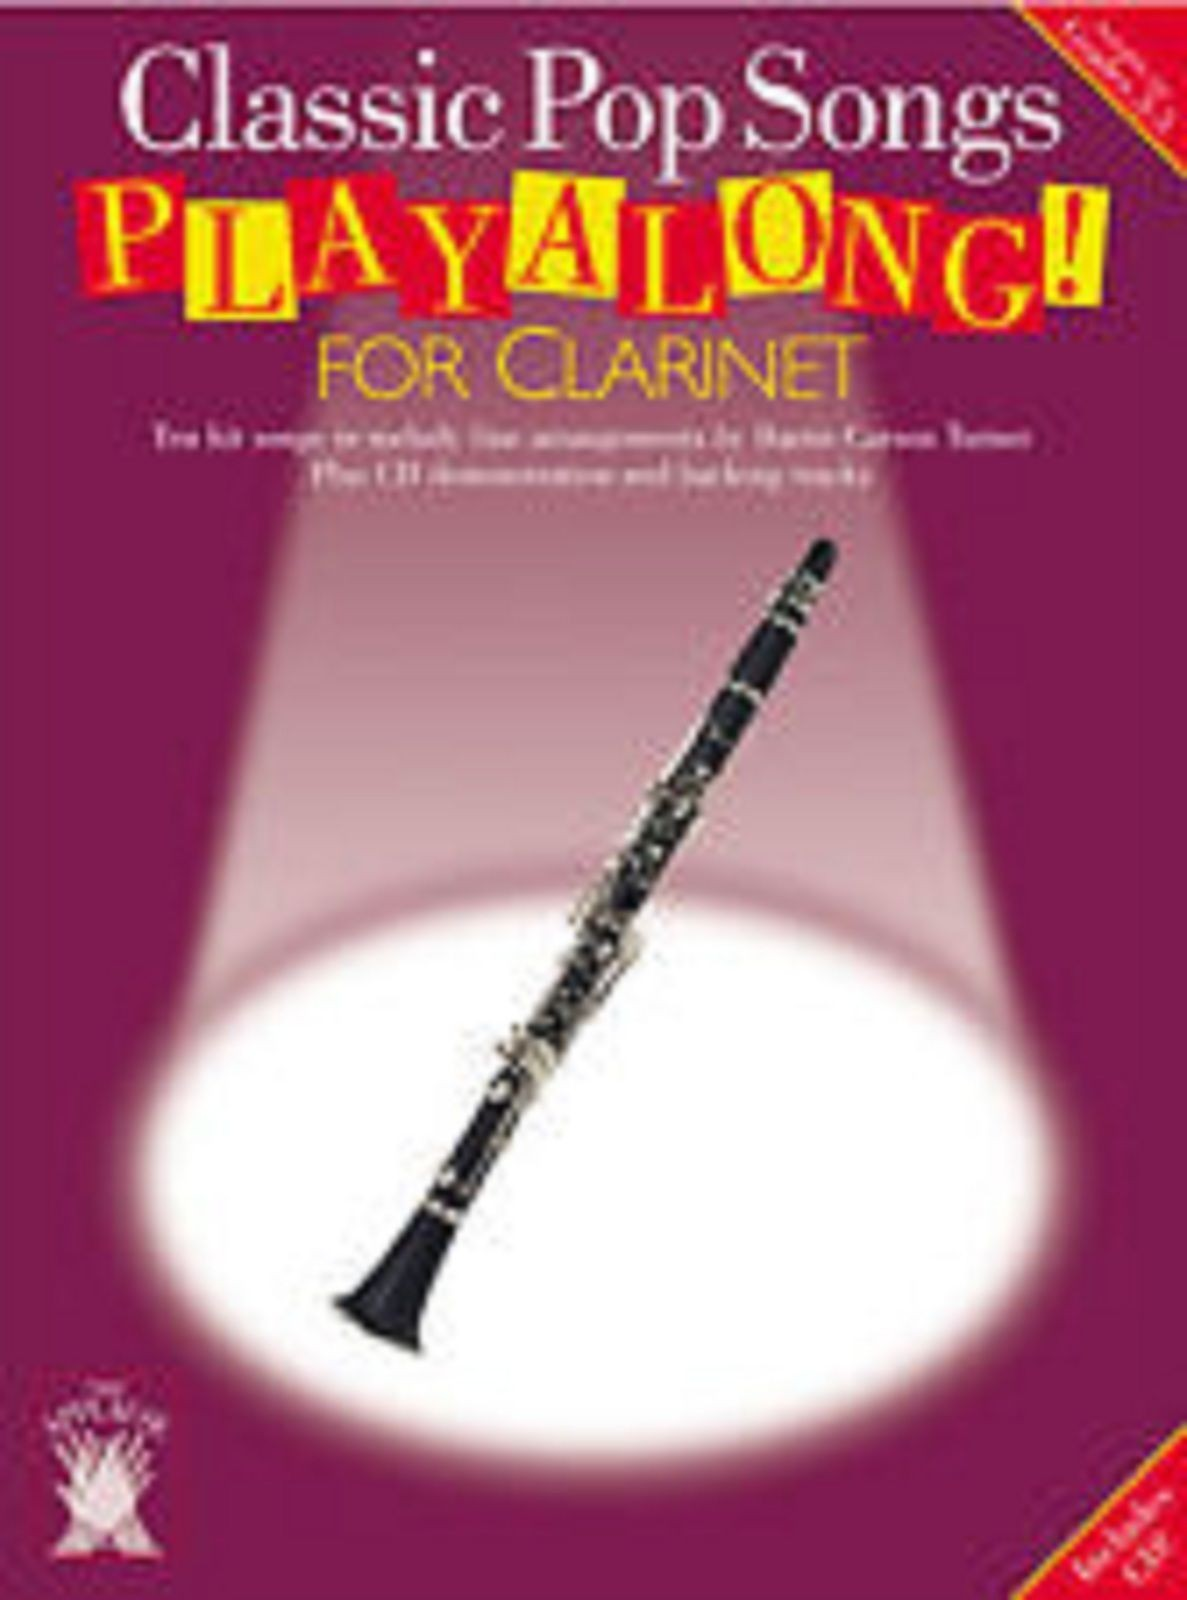 Classic Pop Songs Playalong For Clarinet Melody Line Arrangements Book CD S161